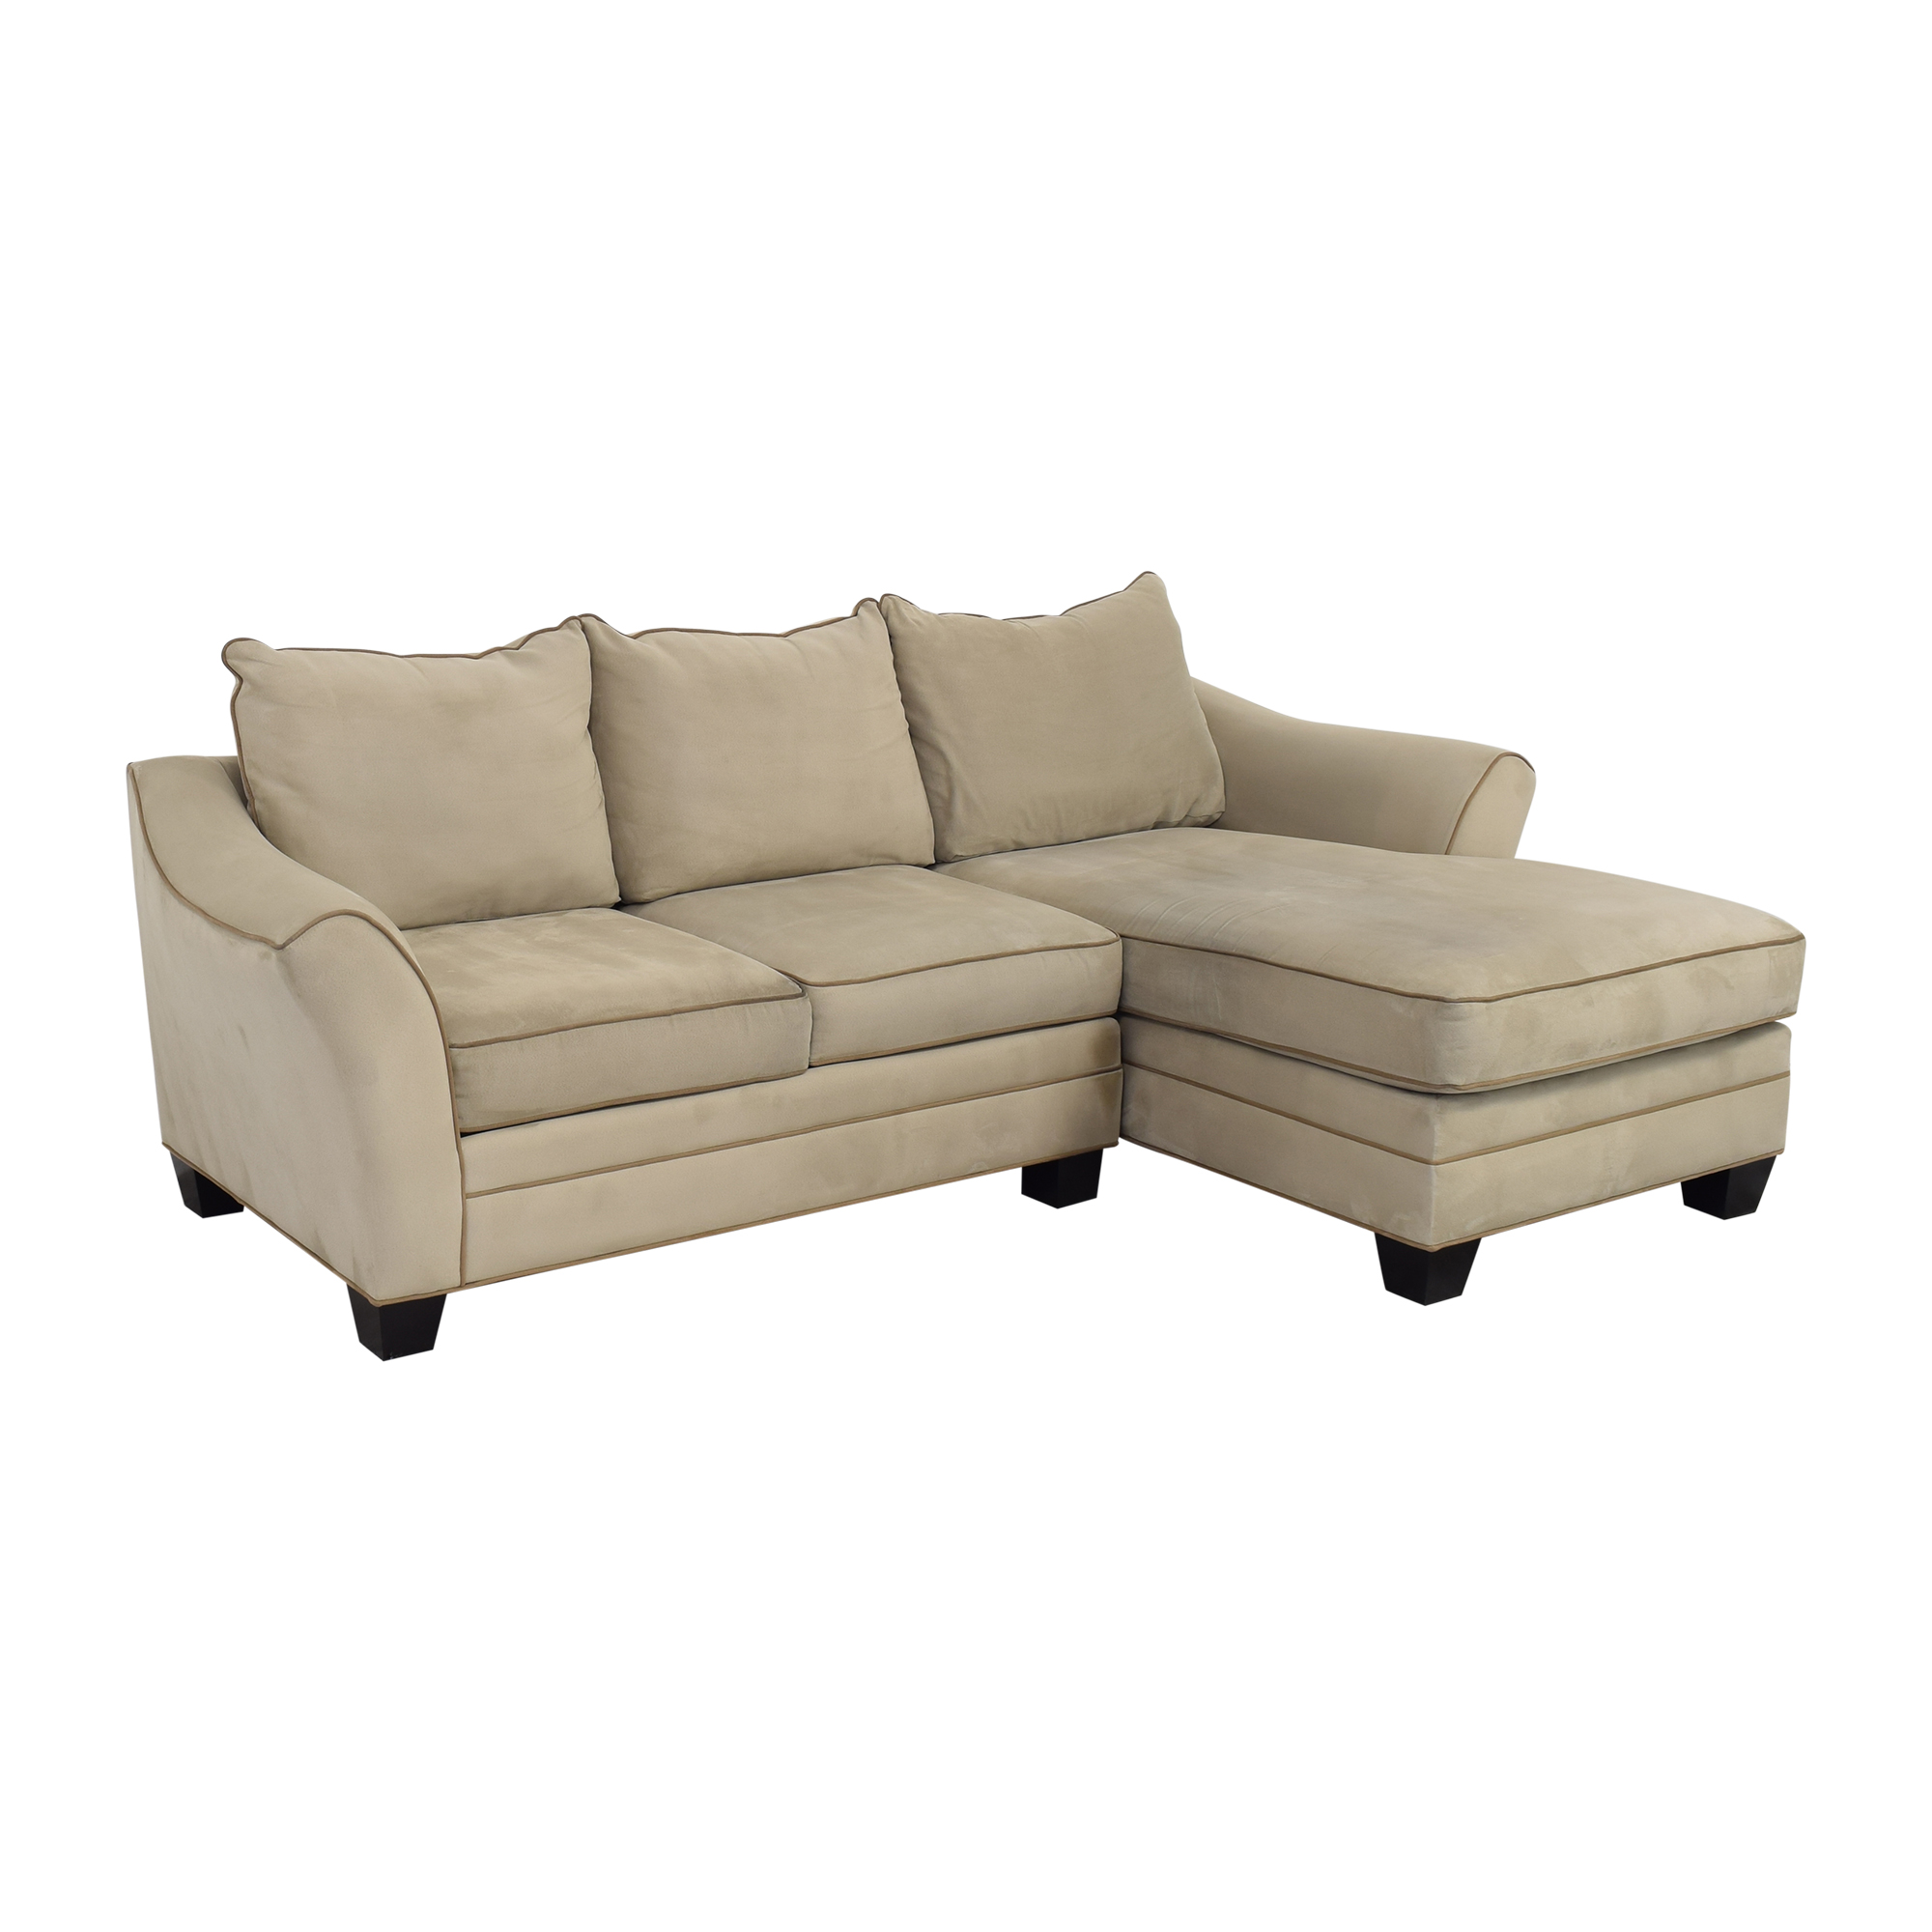 buy Raymour & Flanigan Chaise Sectional Sofa Raymour & Flanigan Sofas